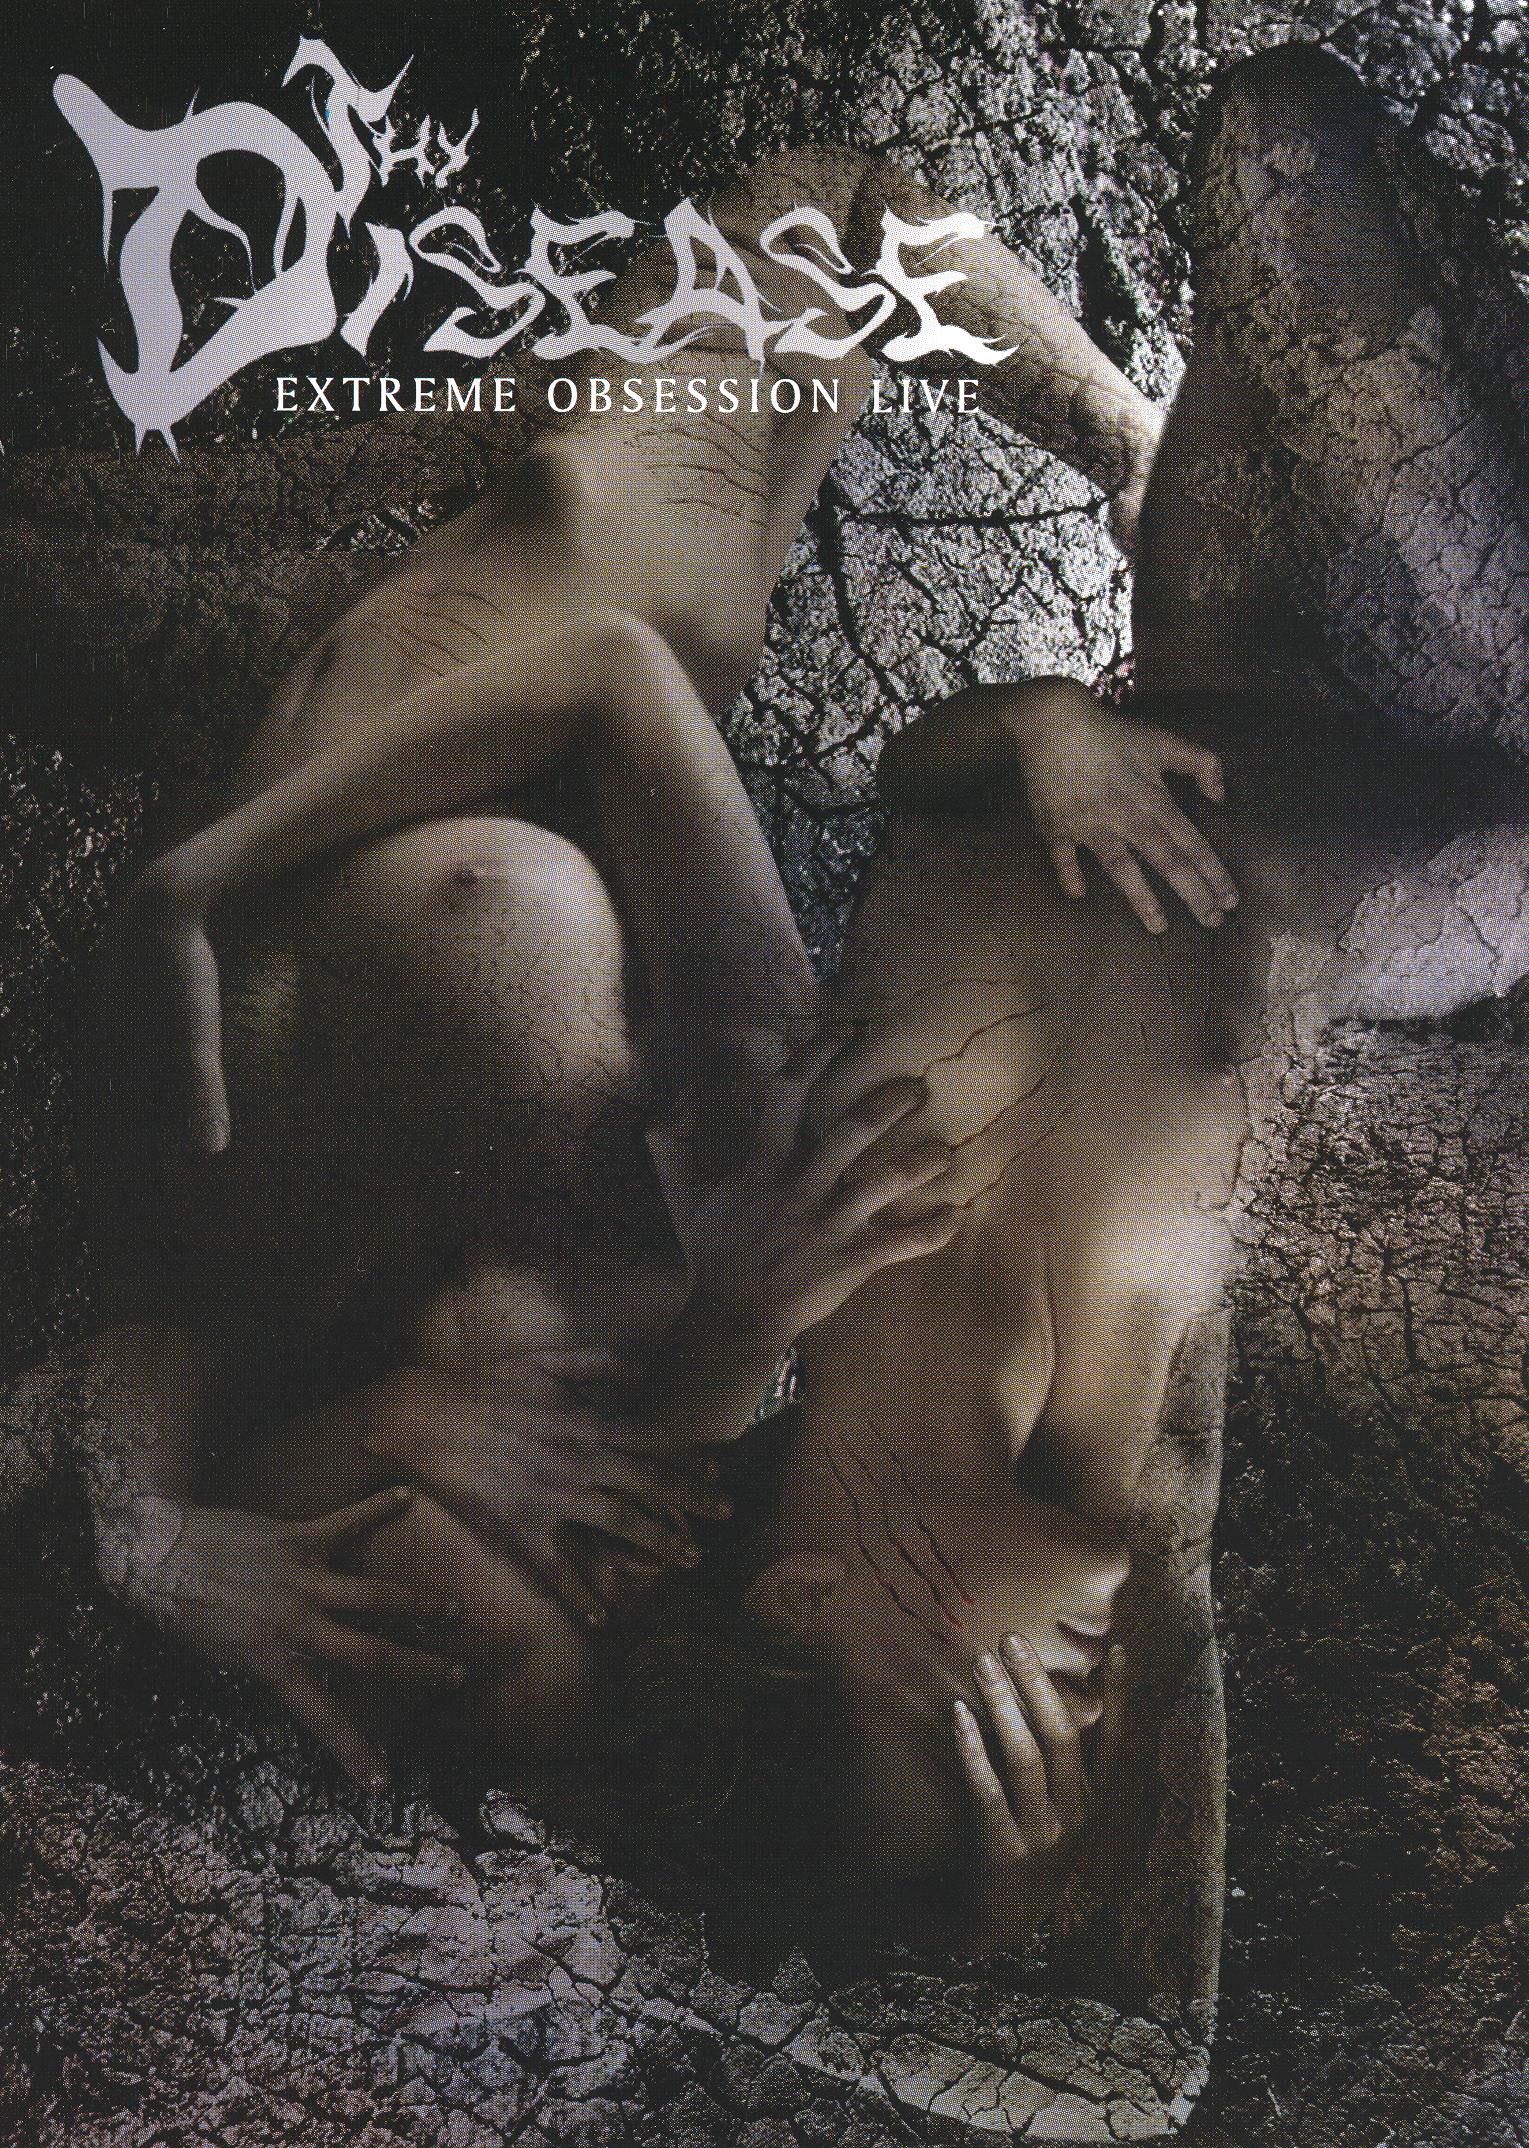 Thy Disease: Extreme Obsession Live